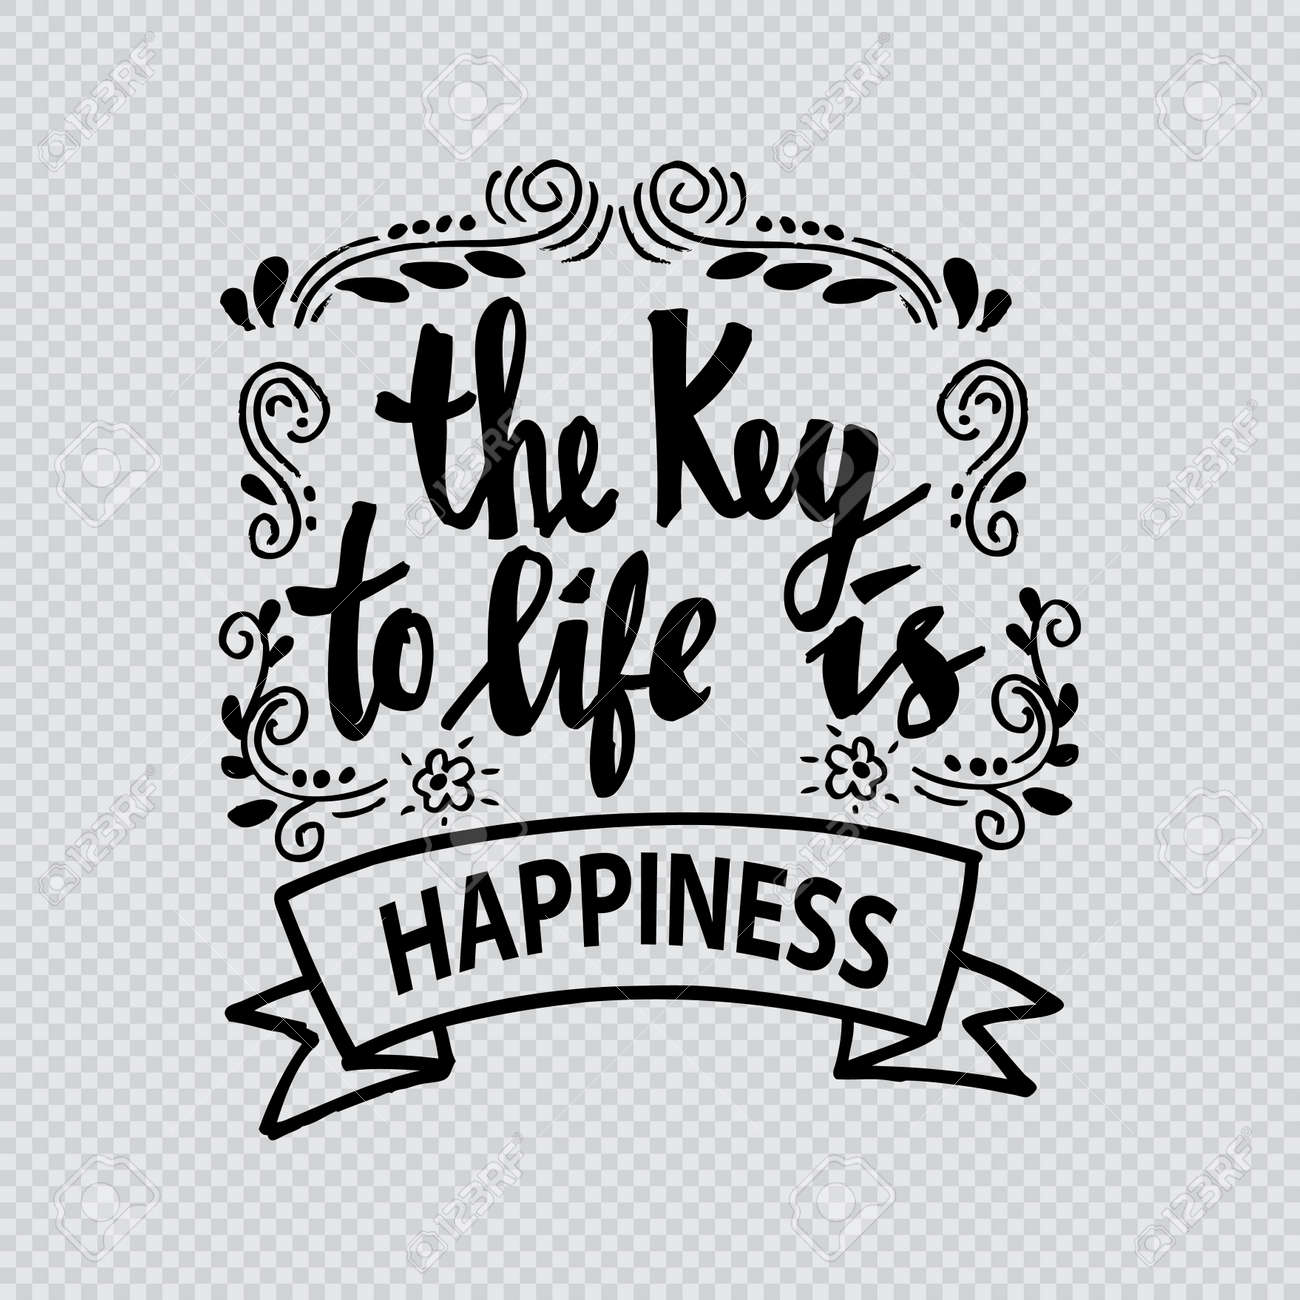 The Key To Life Is Happiness Quotes Motivation Royalty Free